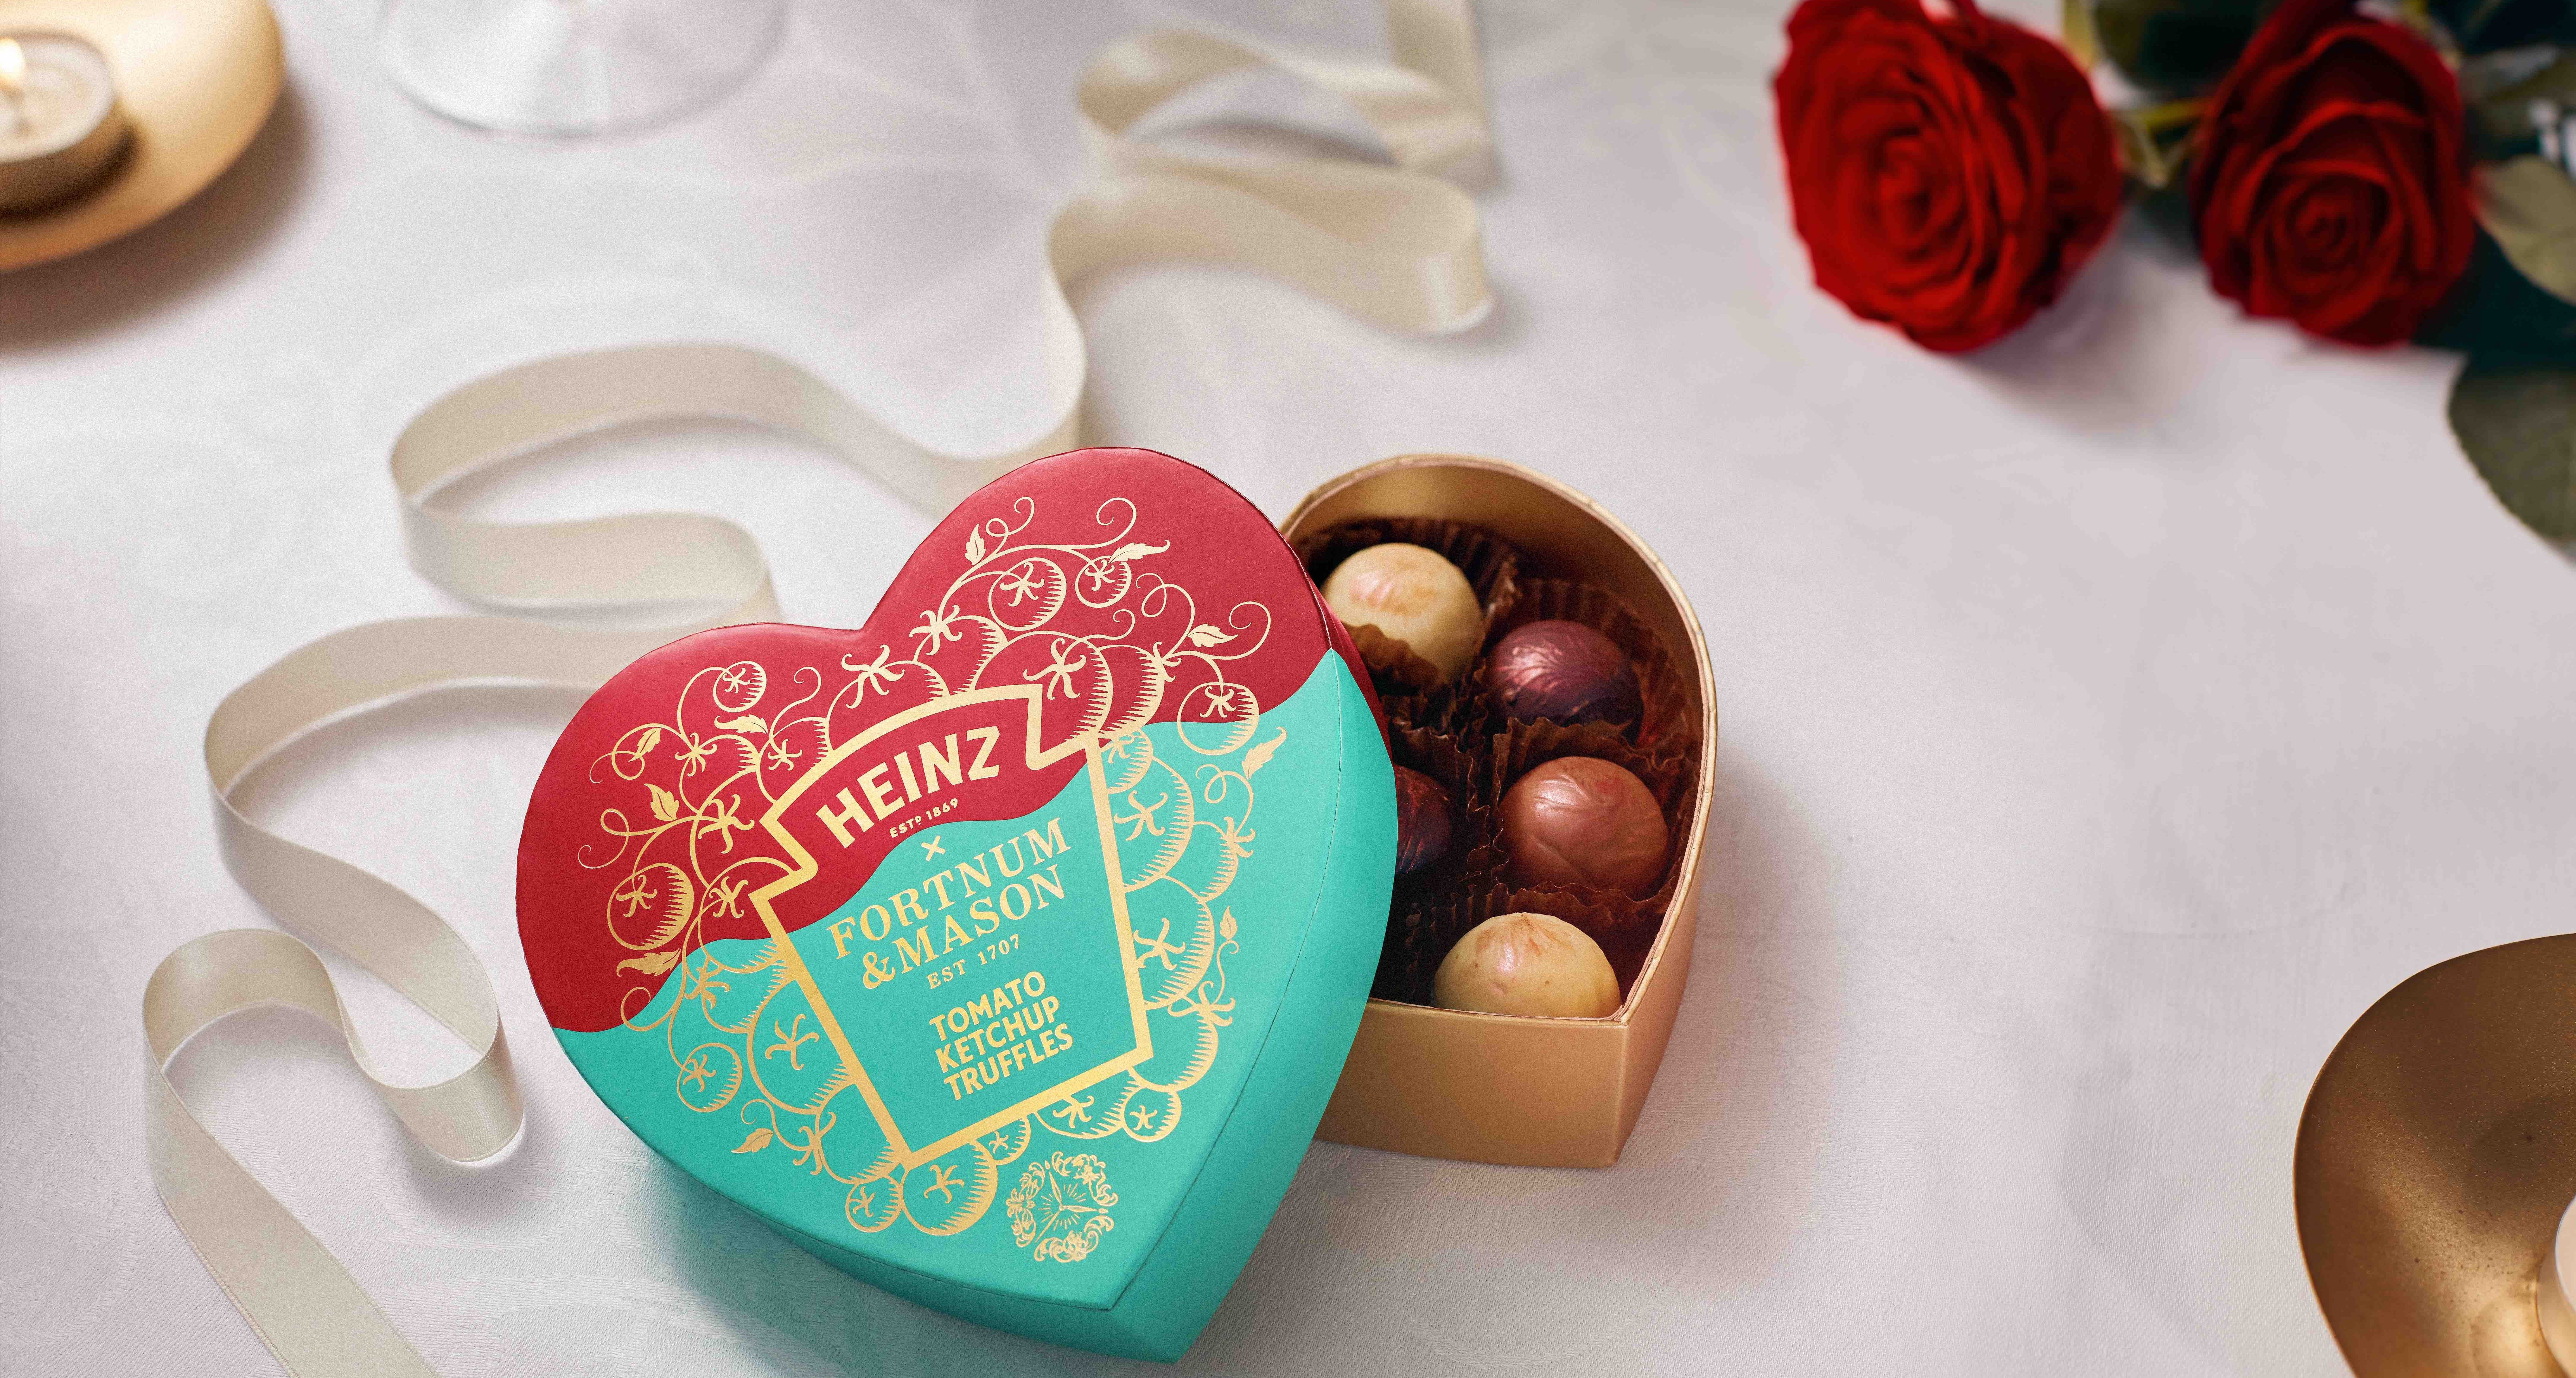 Heinz launches heart-shaped box of ketchup AND chocolate truffles for Valentine's Day